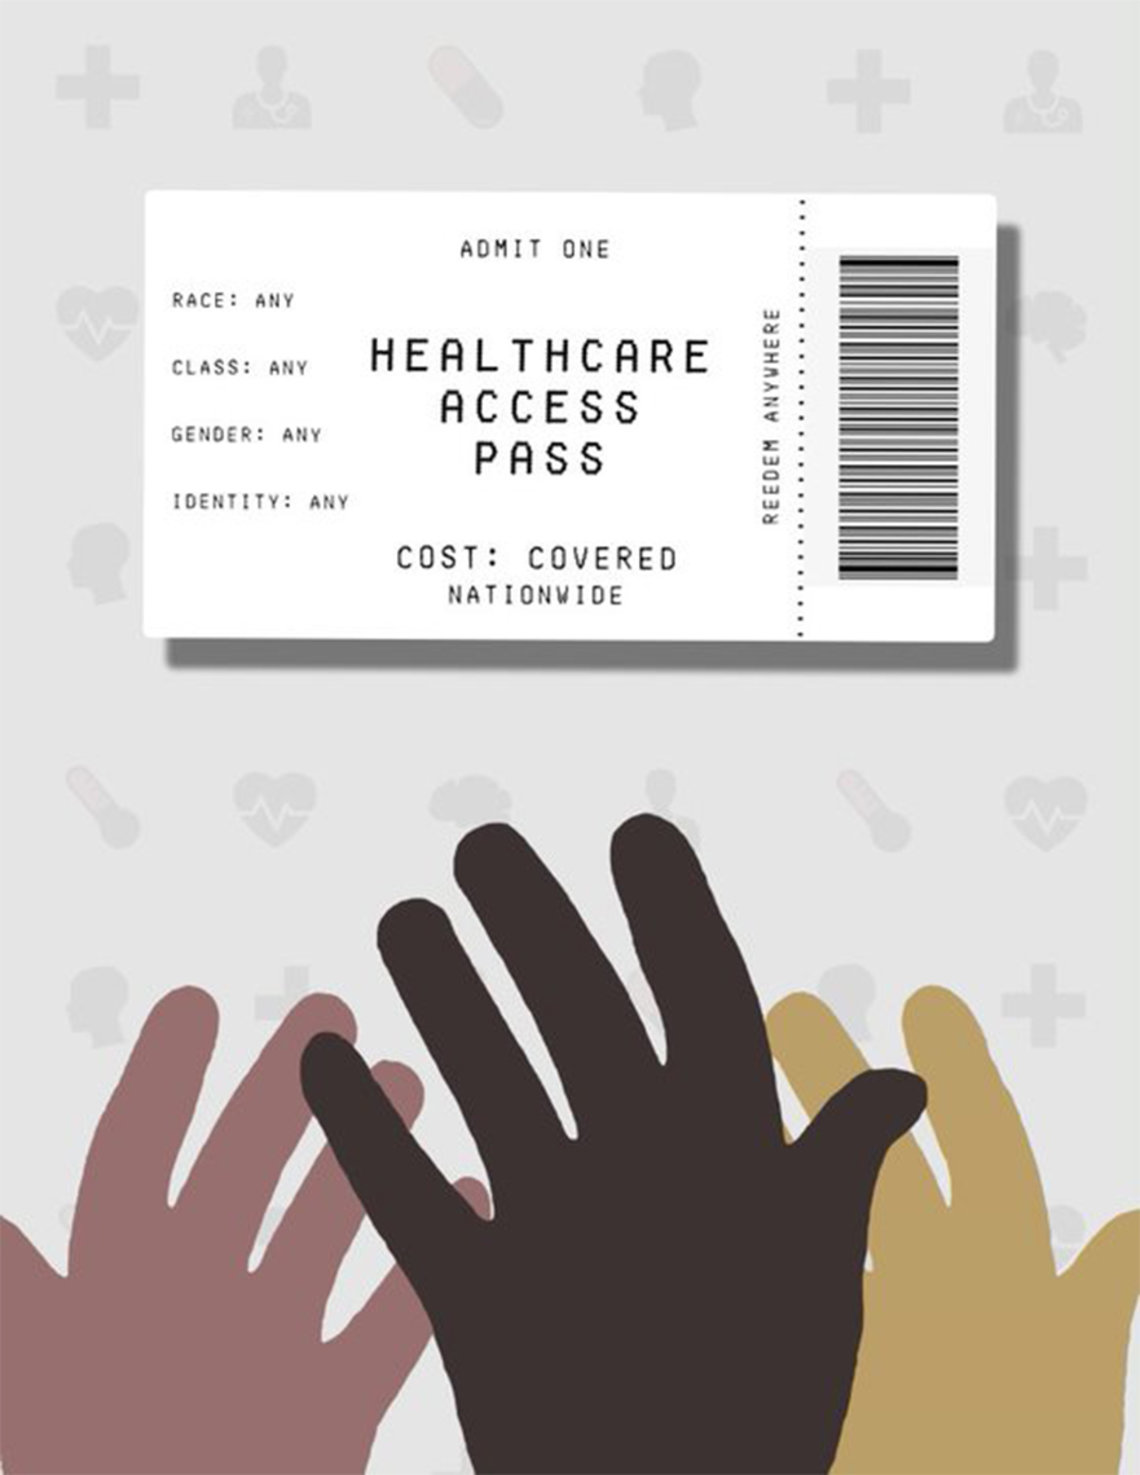 Brown and beige hands reach up toward a paper with a barcode that reads: Healthcare Access Pass